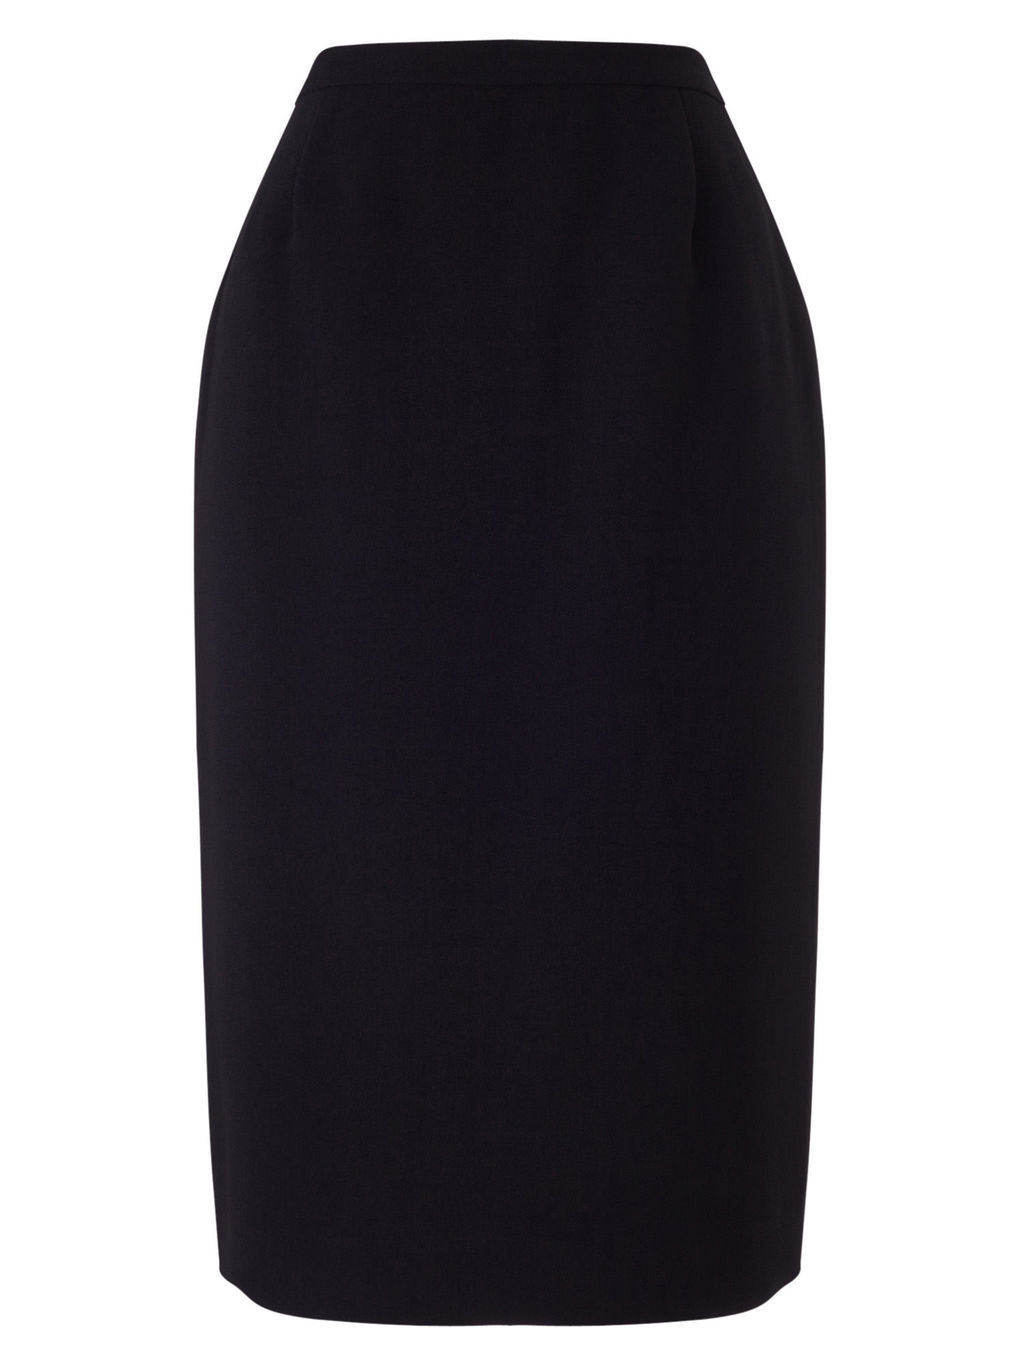 Pencil Skirt - pattern: plain; style: pencil; waist: high rise; predominant colour: black; occasions: work; length: on the knee; fibres: polyester/polyamide - 100%; texture group: crepes; fit: straight cut; pattern type: fabric; season: s/s 2016; wardrobe: basic